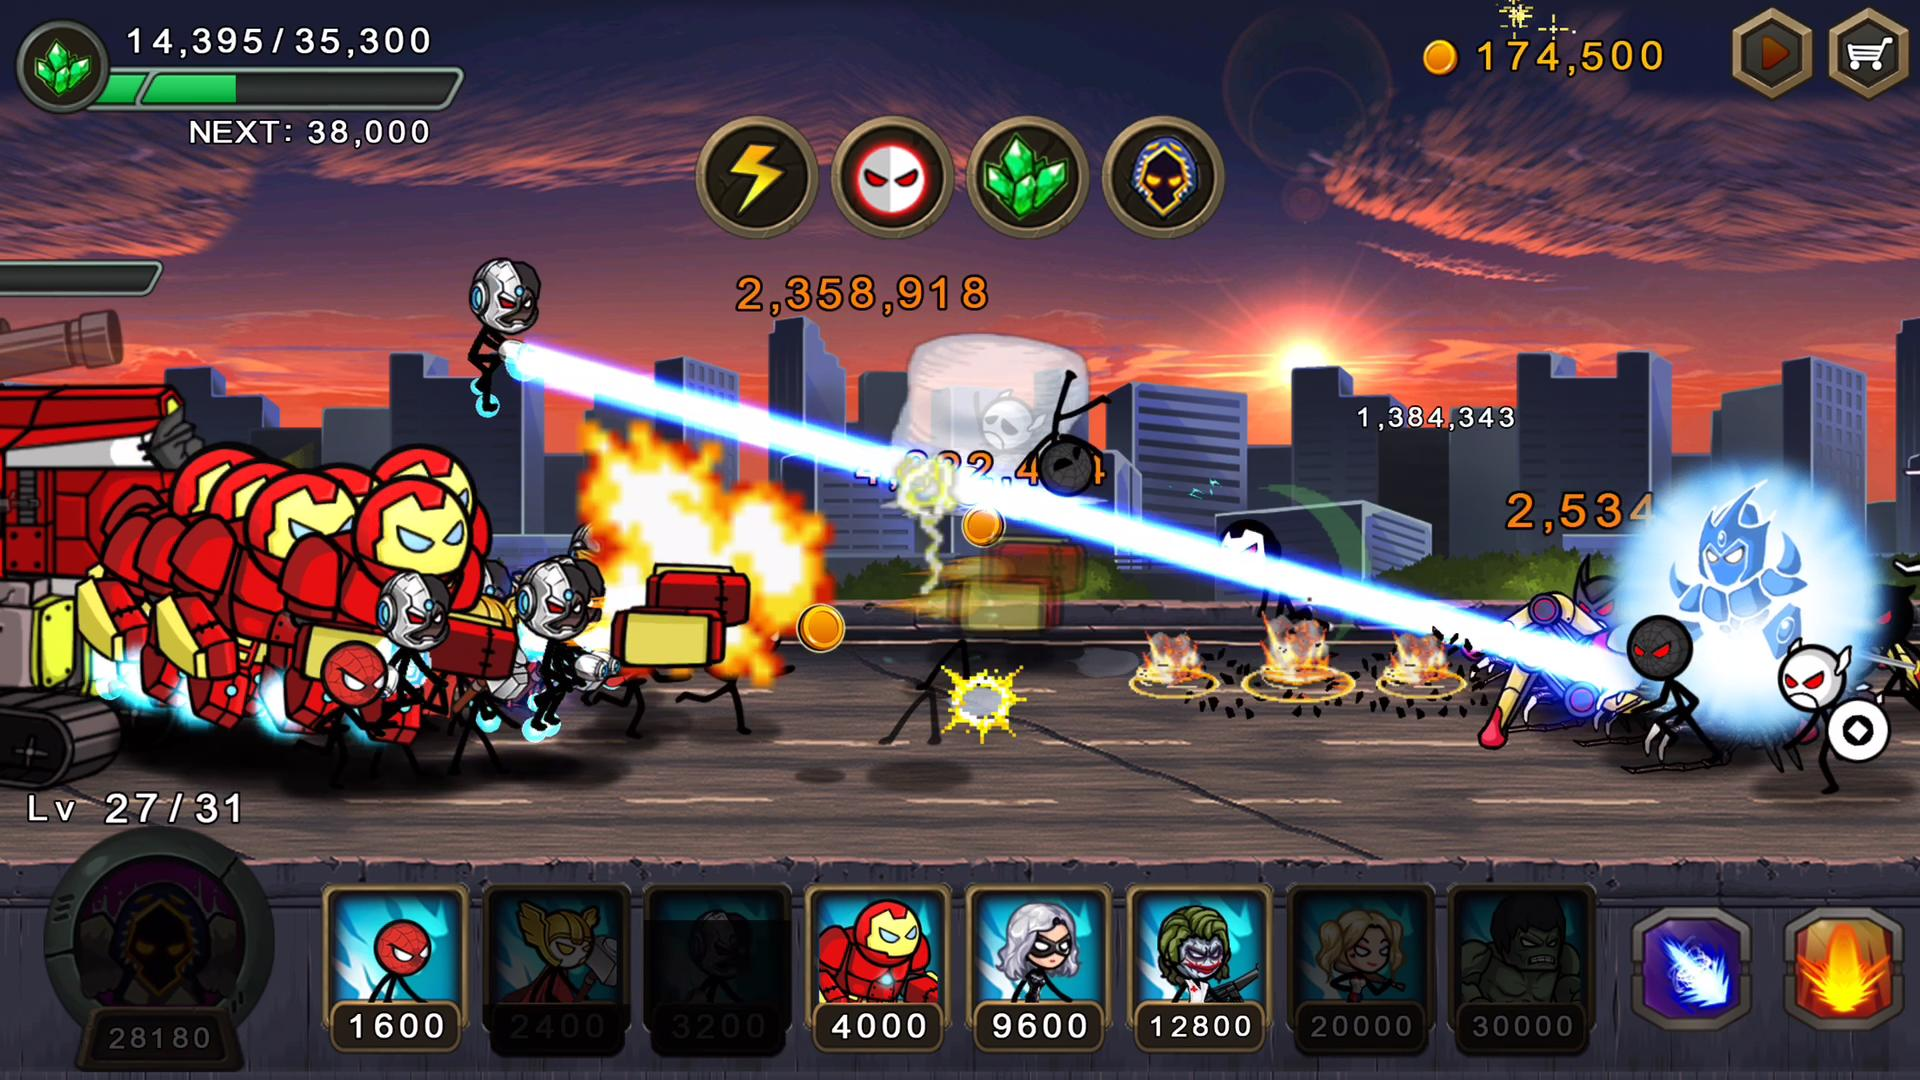 Defense Heroes 360 for Android - APK Download